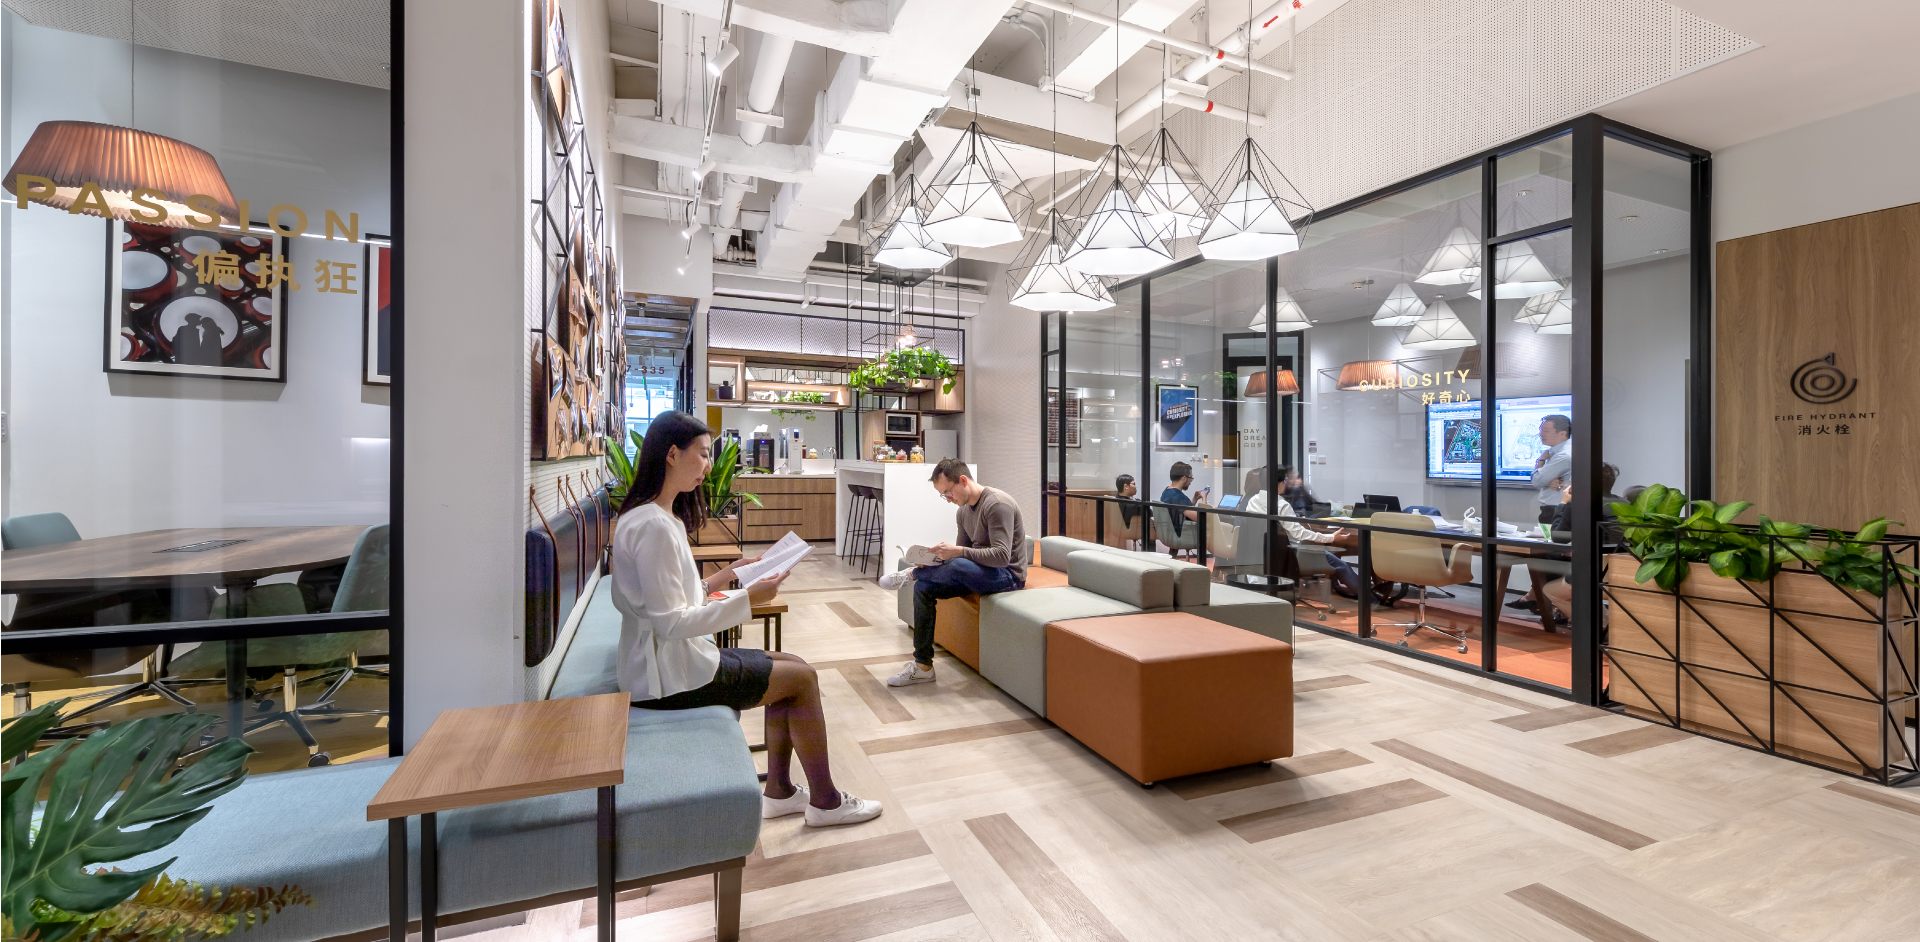 Things to keep in mind when working on the interior design of the office